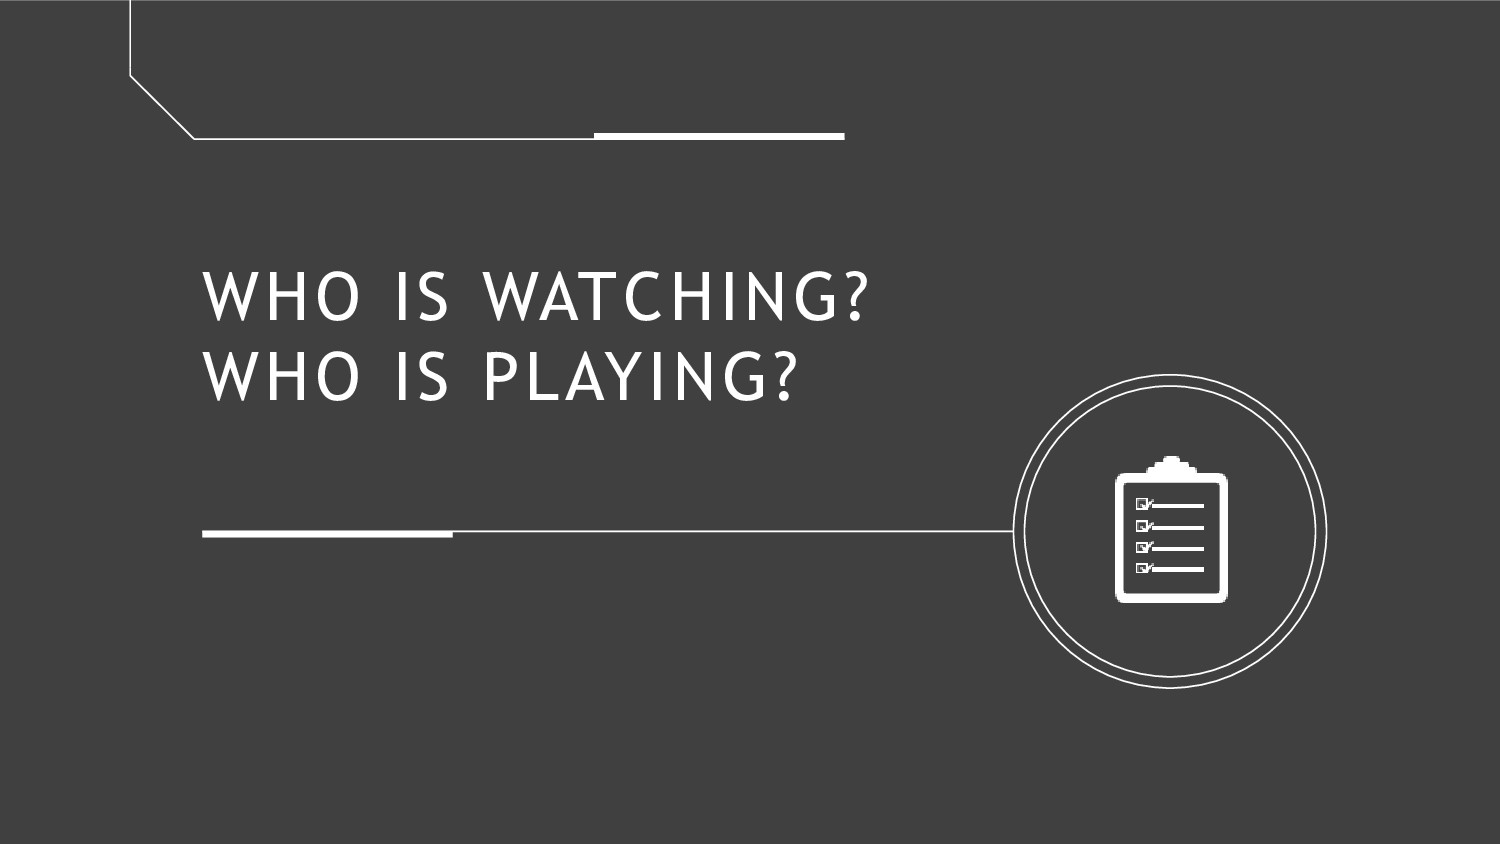 WHO IS WATCHING? WHO IS PLAYING?